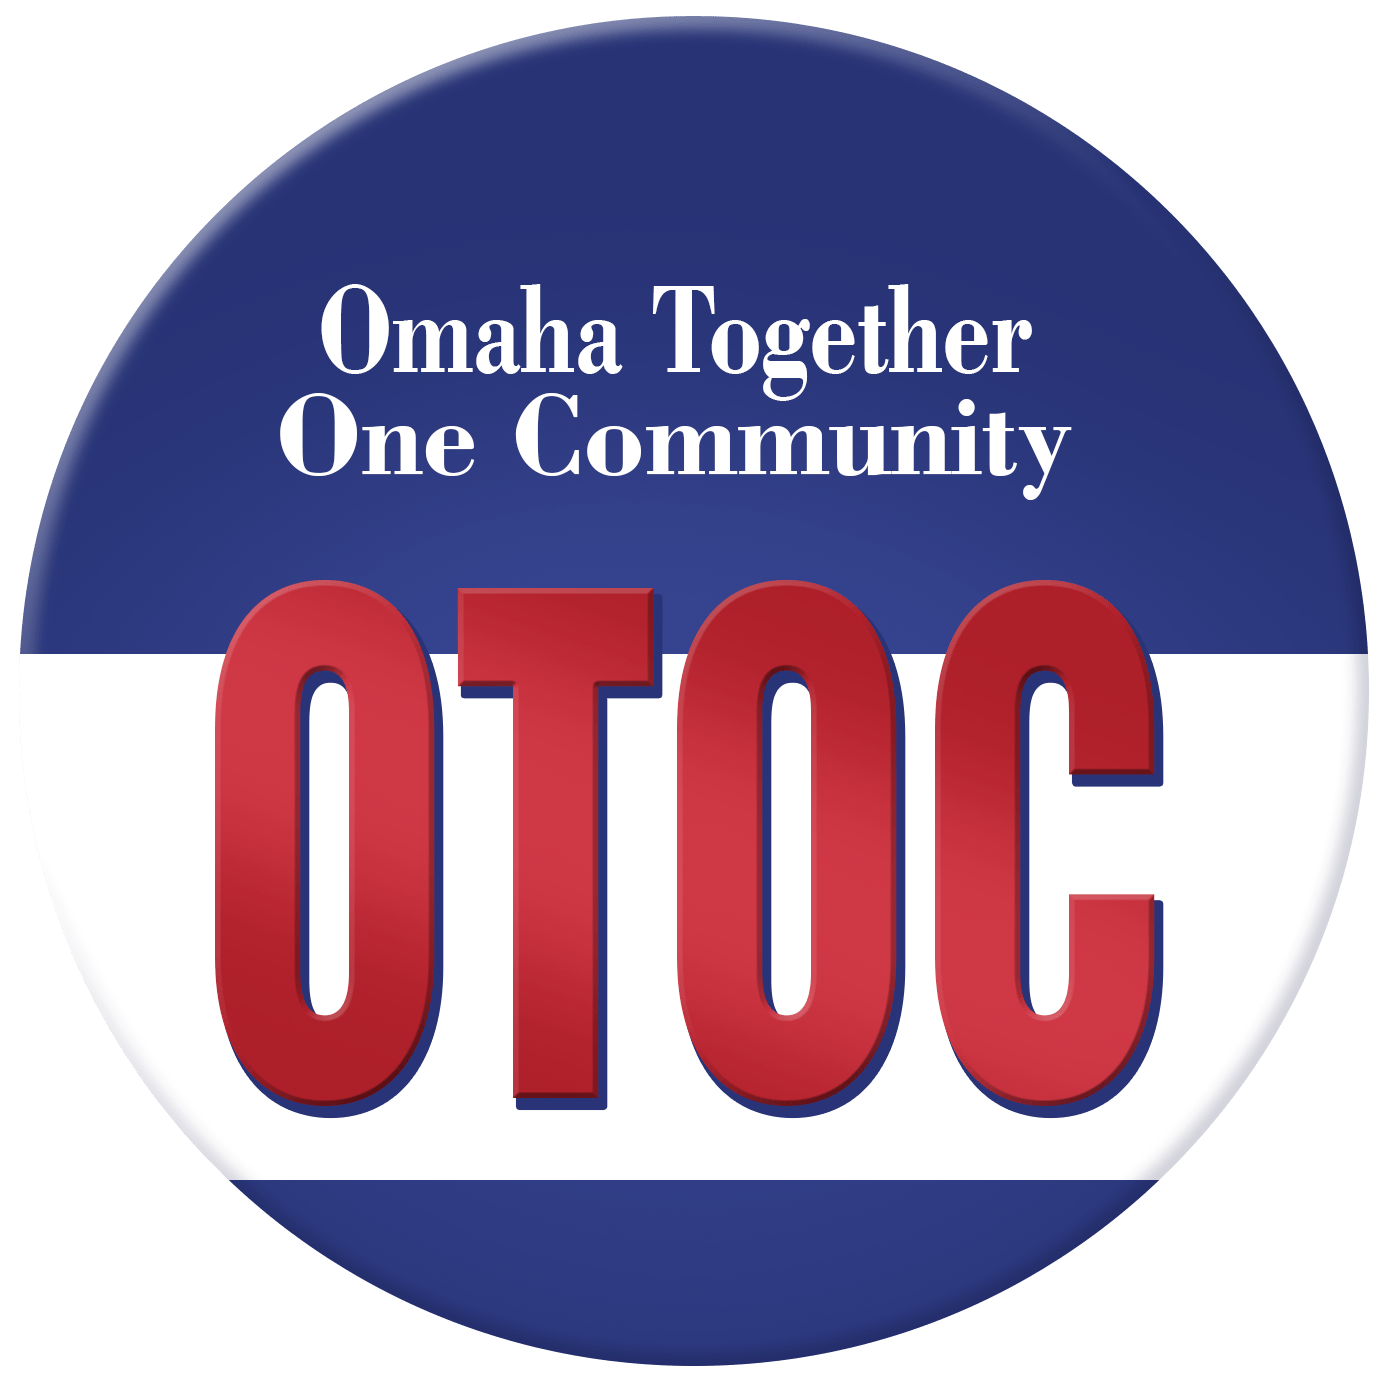 Omaha Together One Community